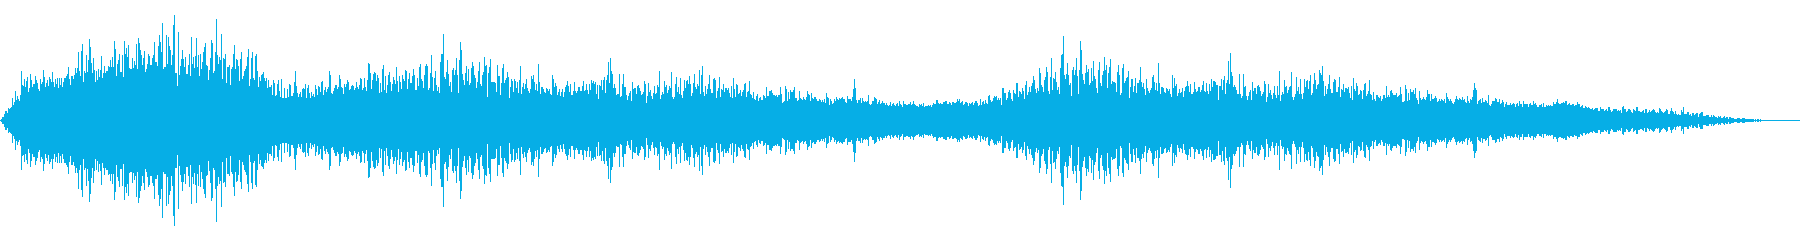 Noise-based sound source 13 that is likely to appear in horror films's reproduced waveform